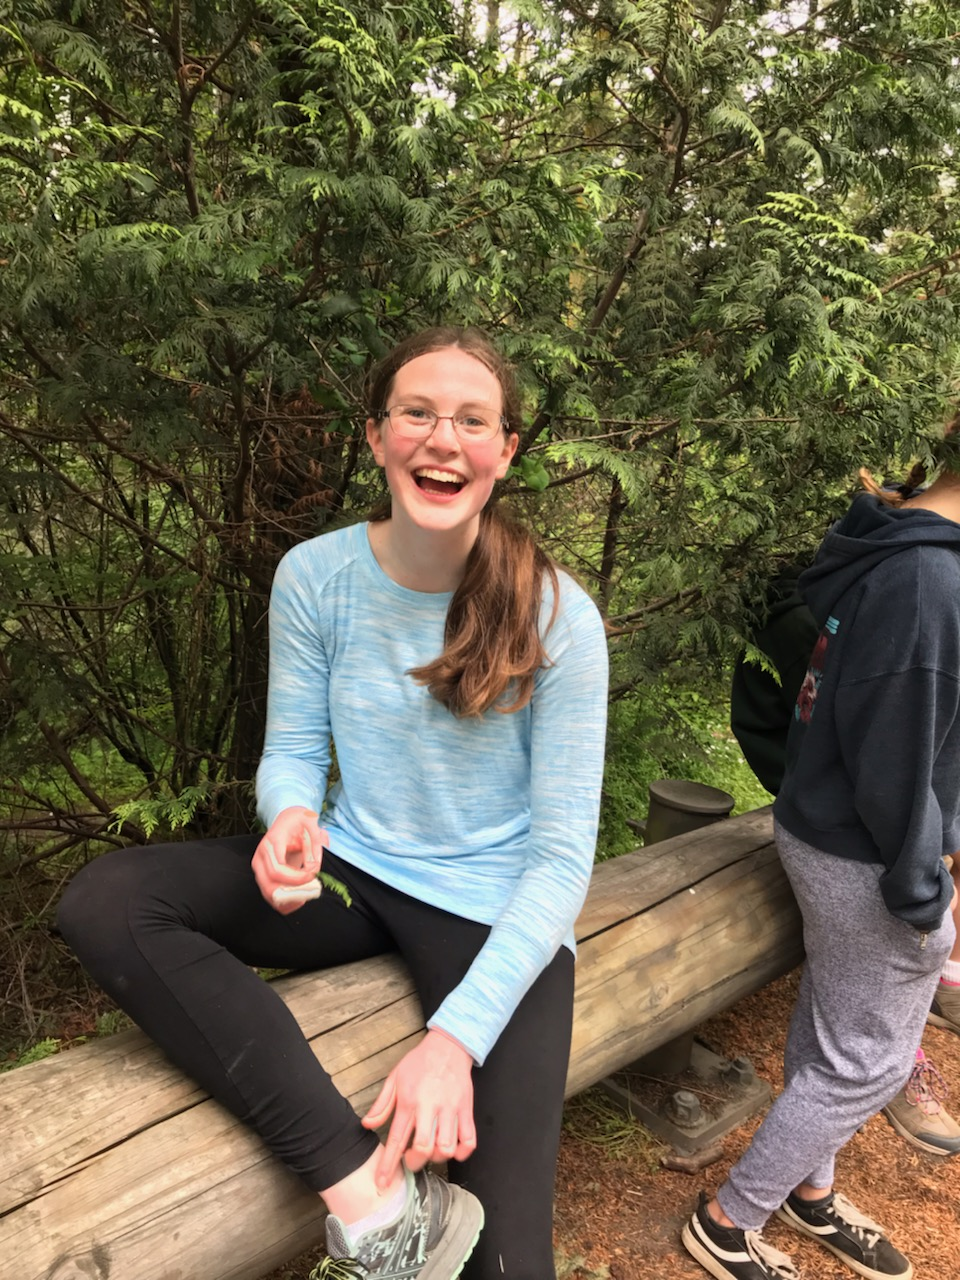 Janelle Clouse - is a 12-year-old girl and has been blessed with an awesome family. She loves writing creative stories, friends, skiing basketball and riding horses. She also greatly enjoys deep discussions, especially about the Bible.